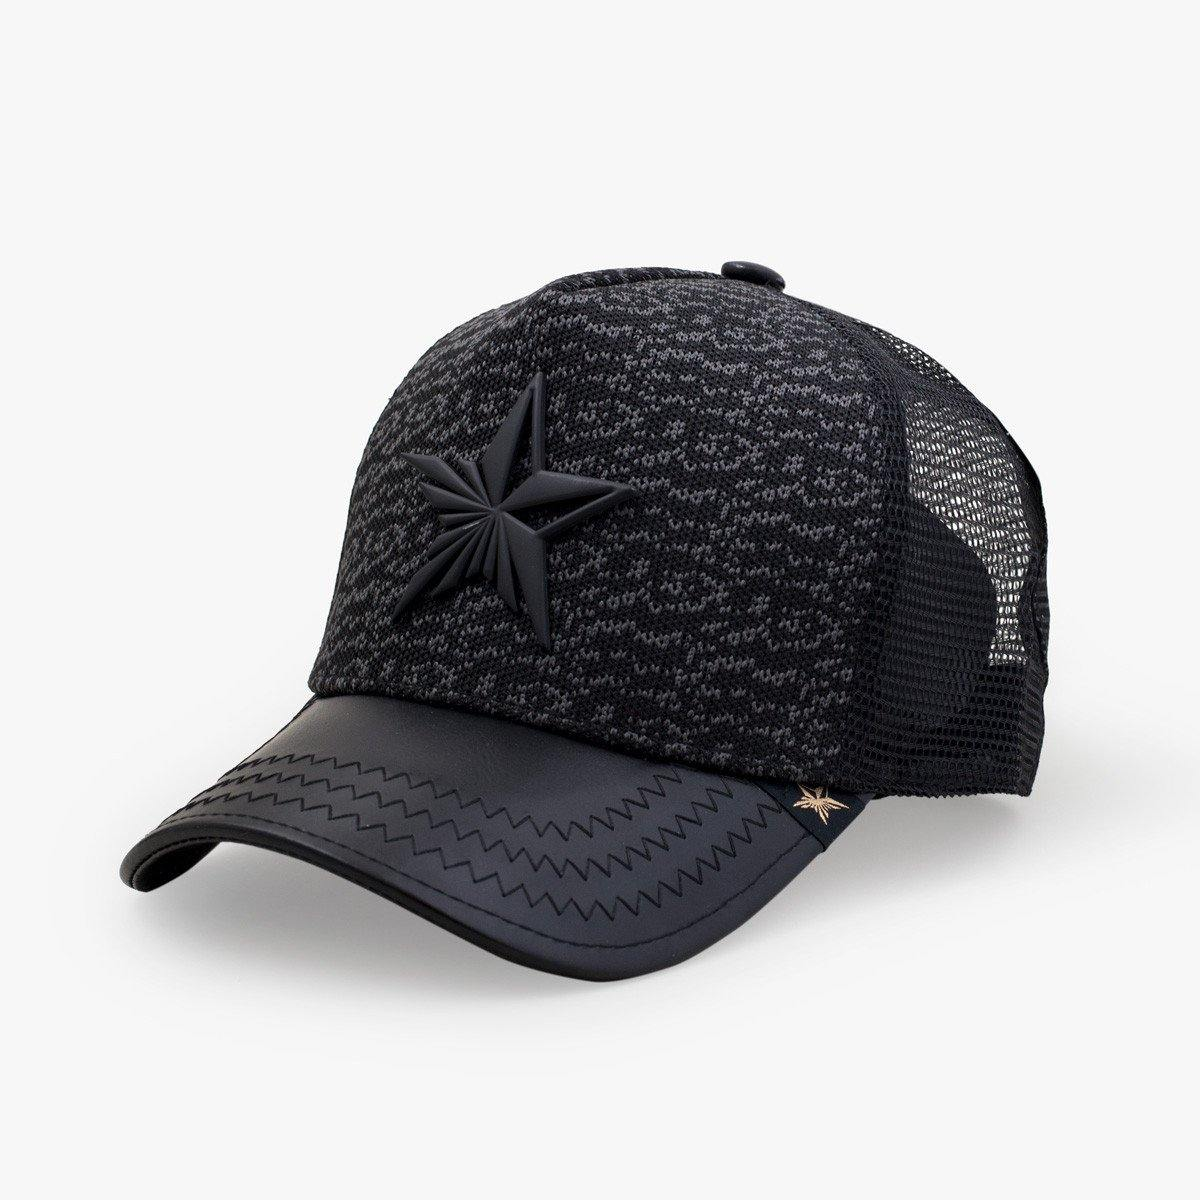 New Yeezy Black Trucker Hat